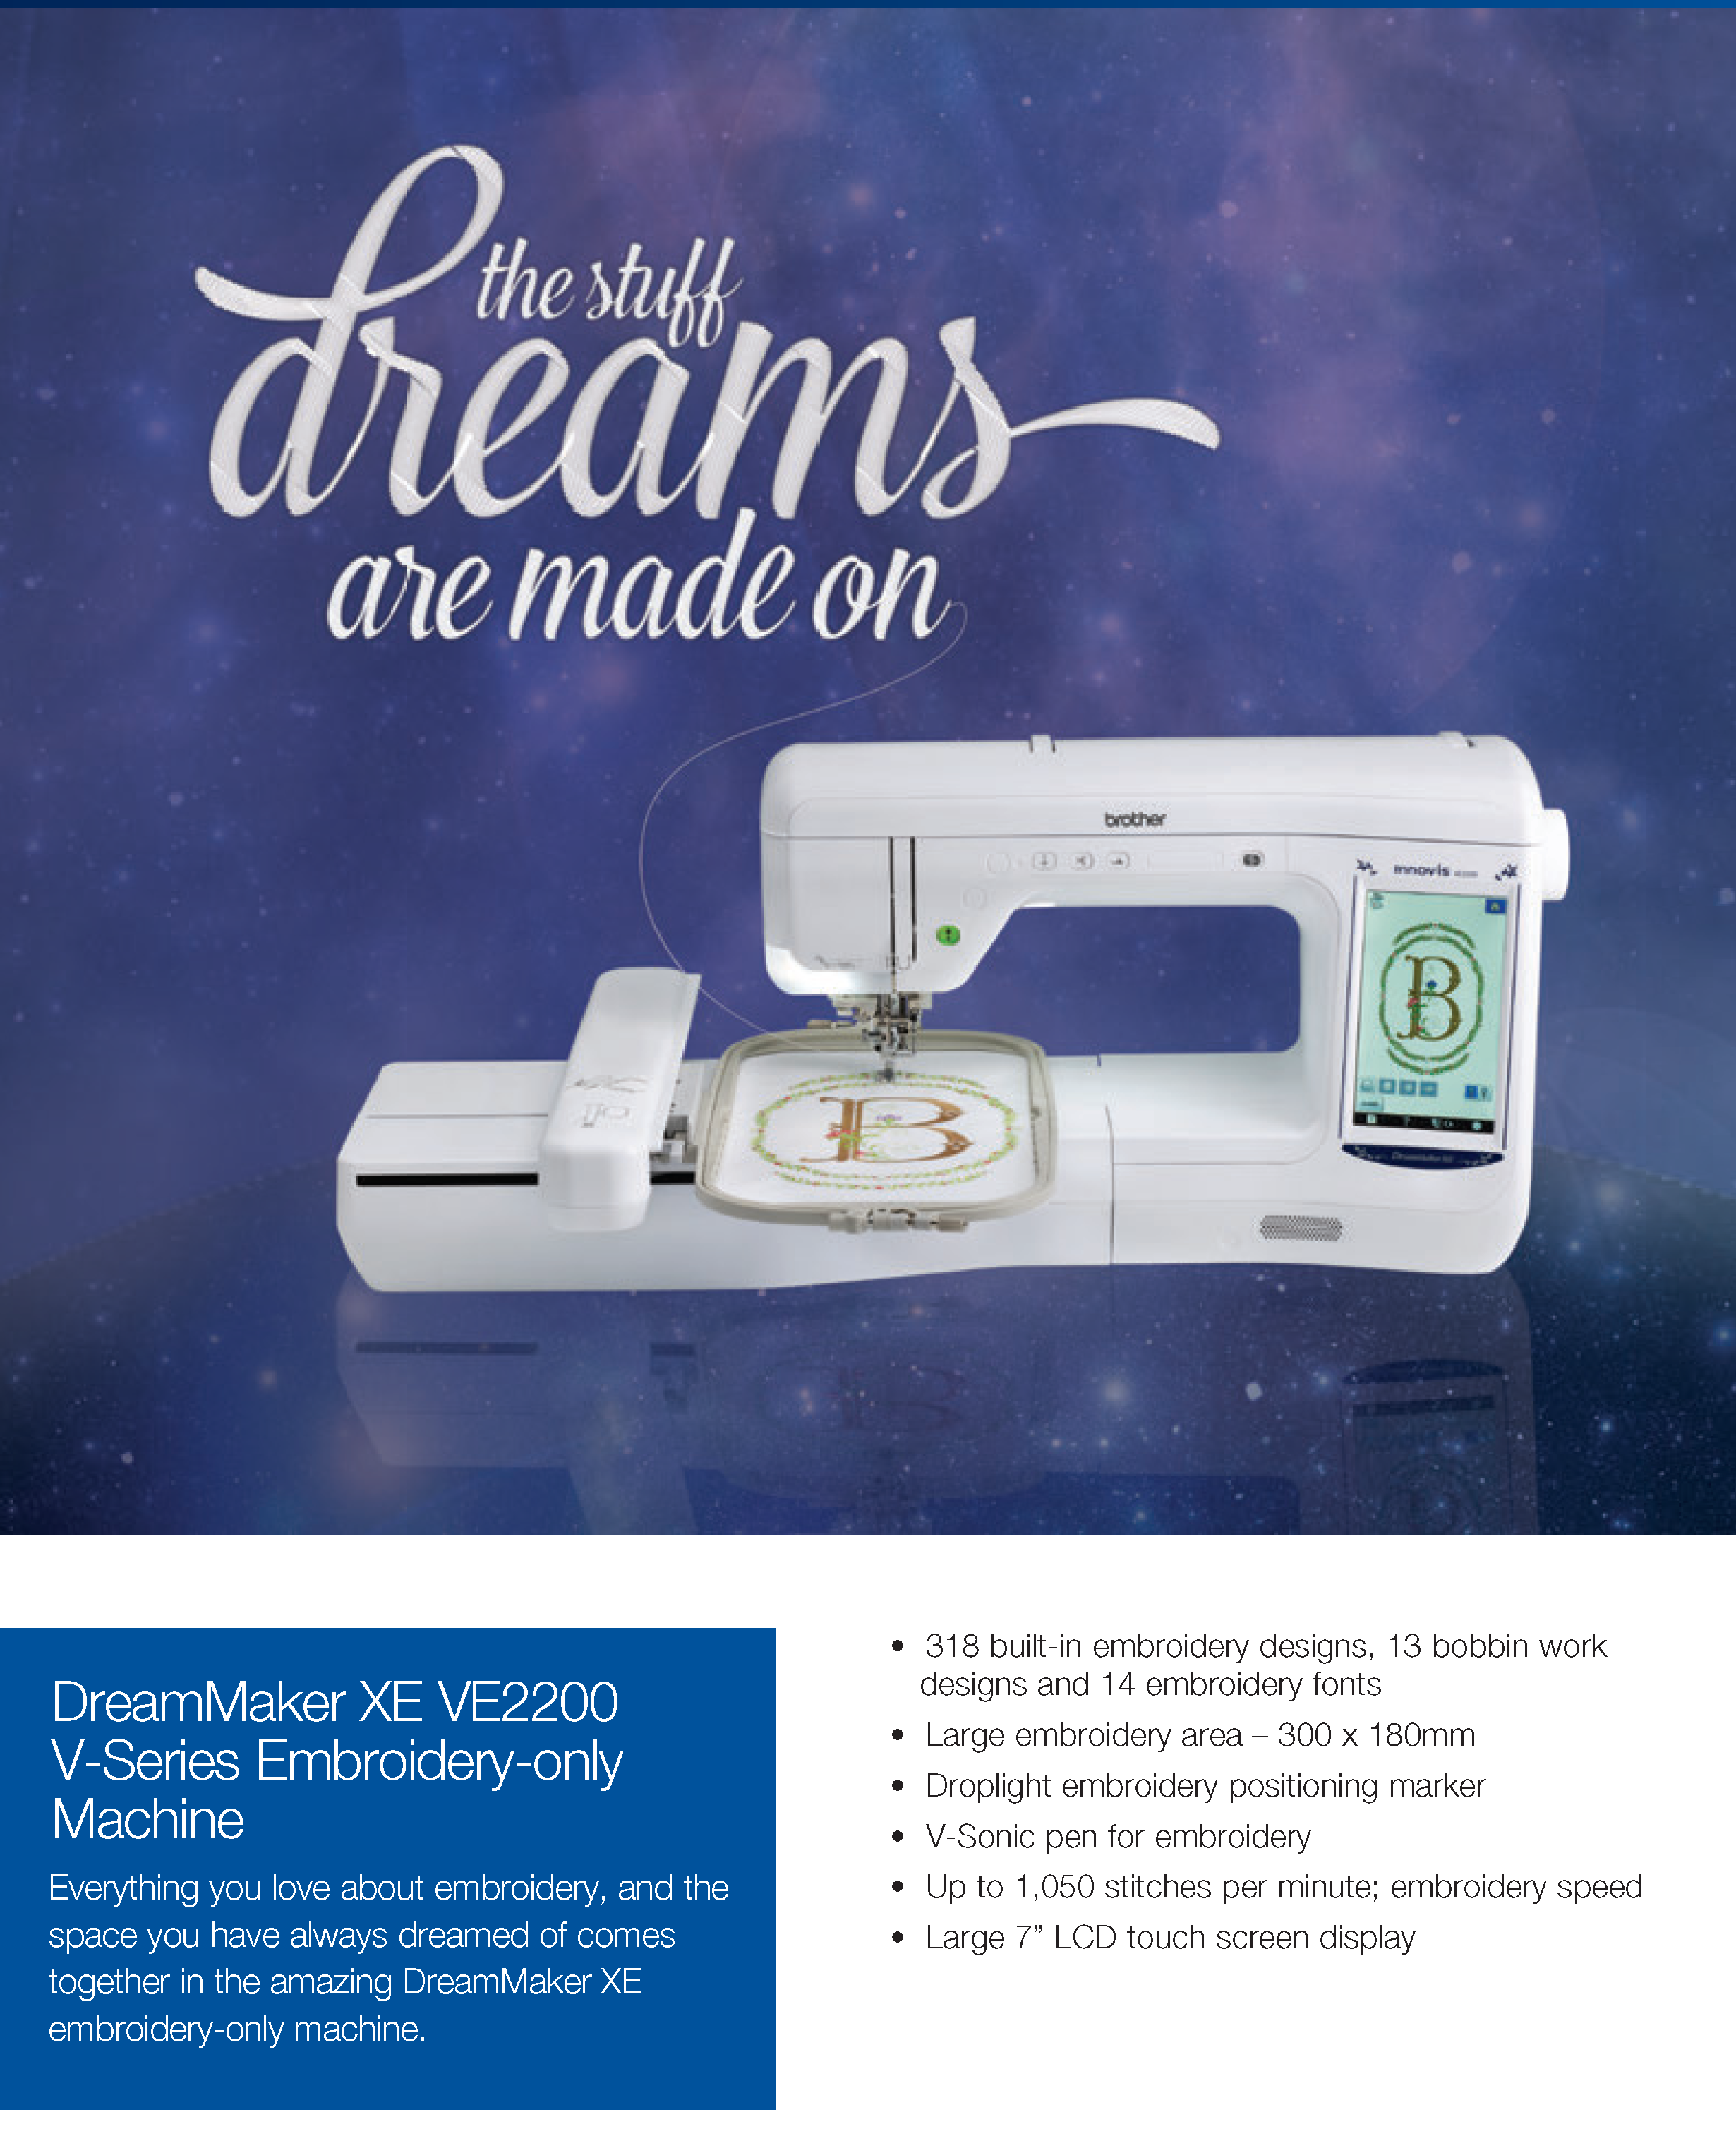 ve2200 embroidery machine